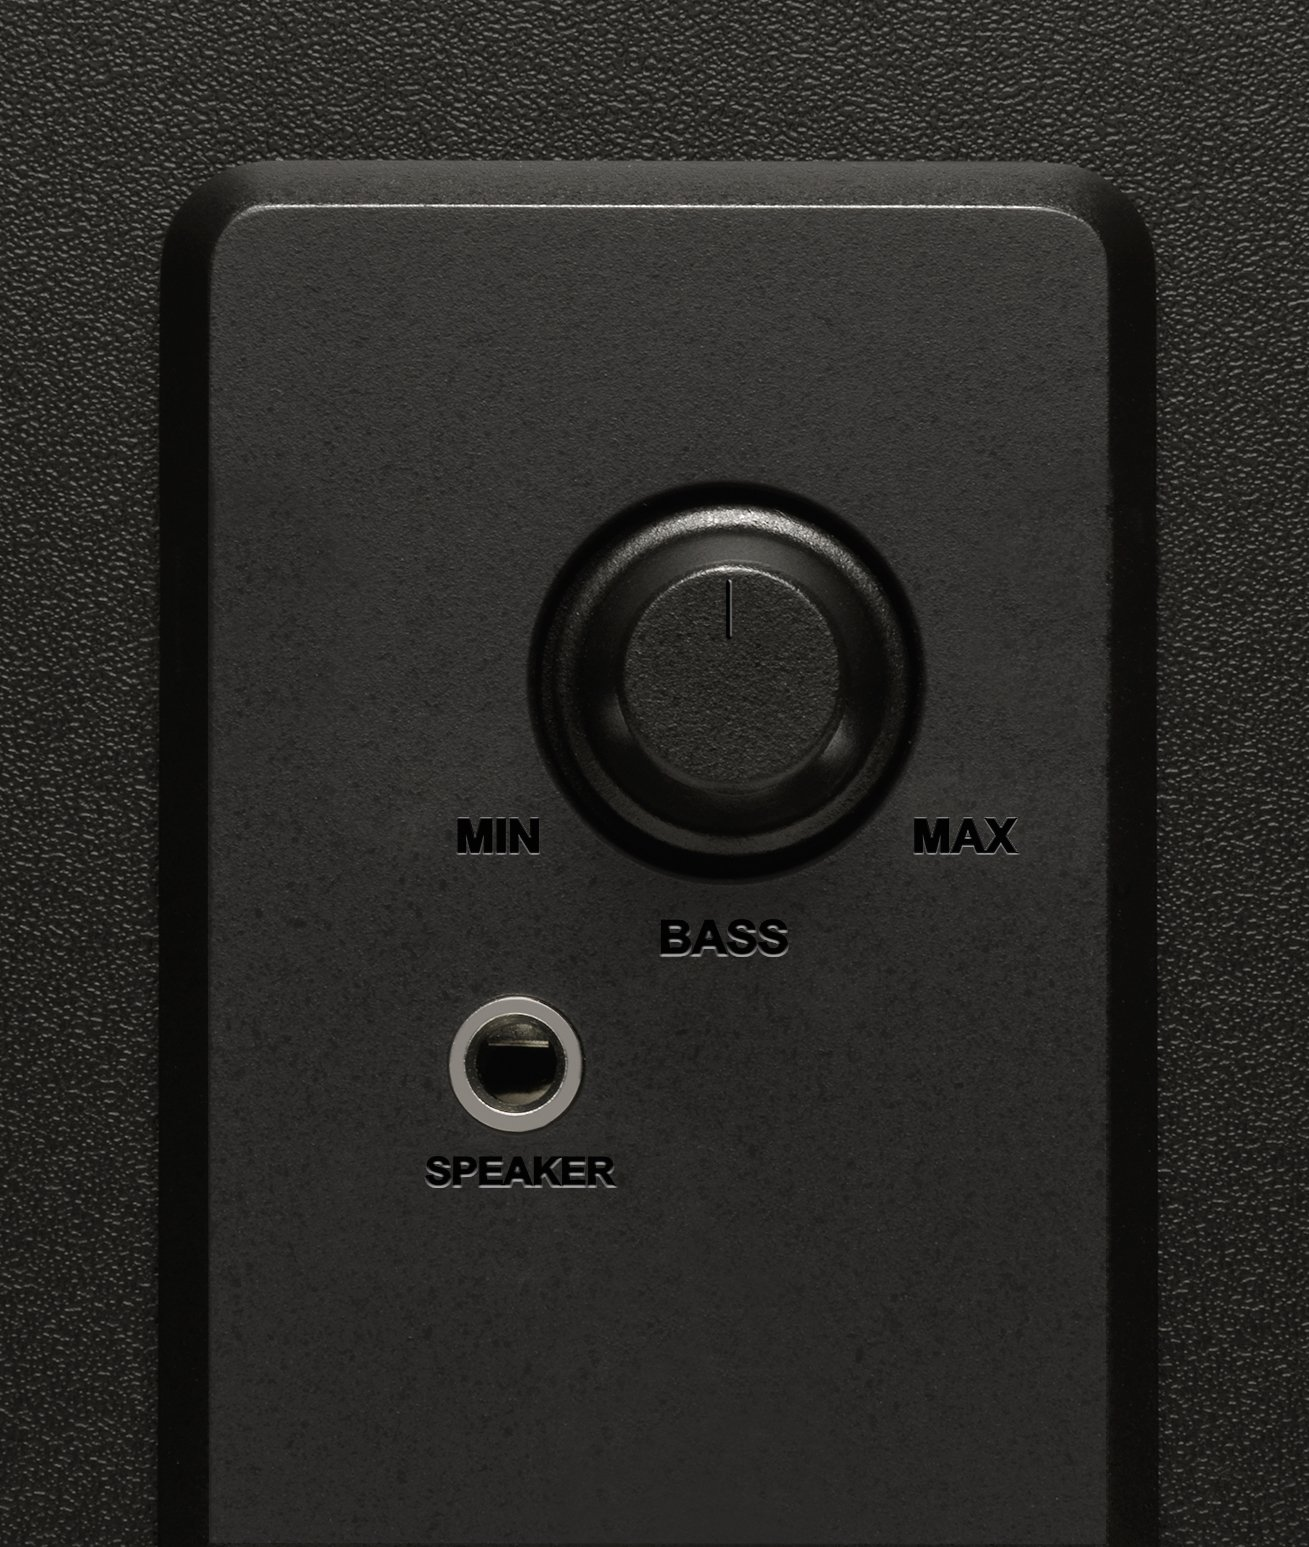 Logitech Multimedia 2.1 Speakers Z213 for PC and Mobile Devices by Logitech (Image #4)